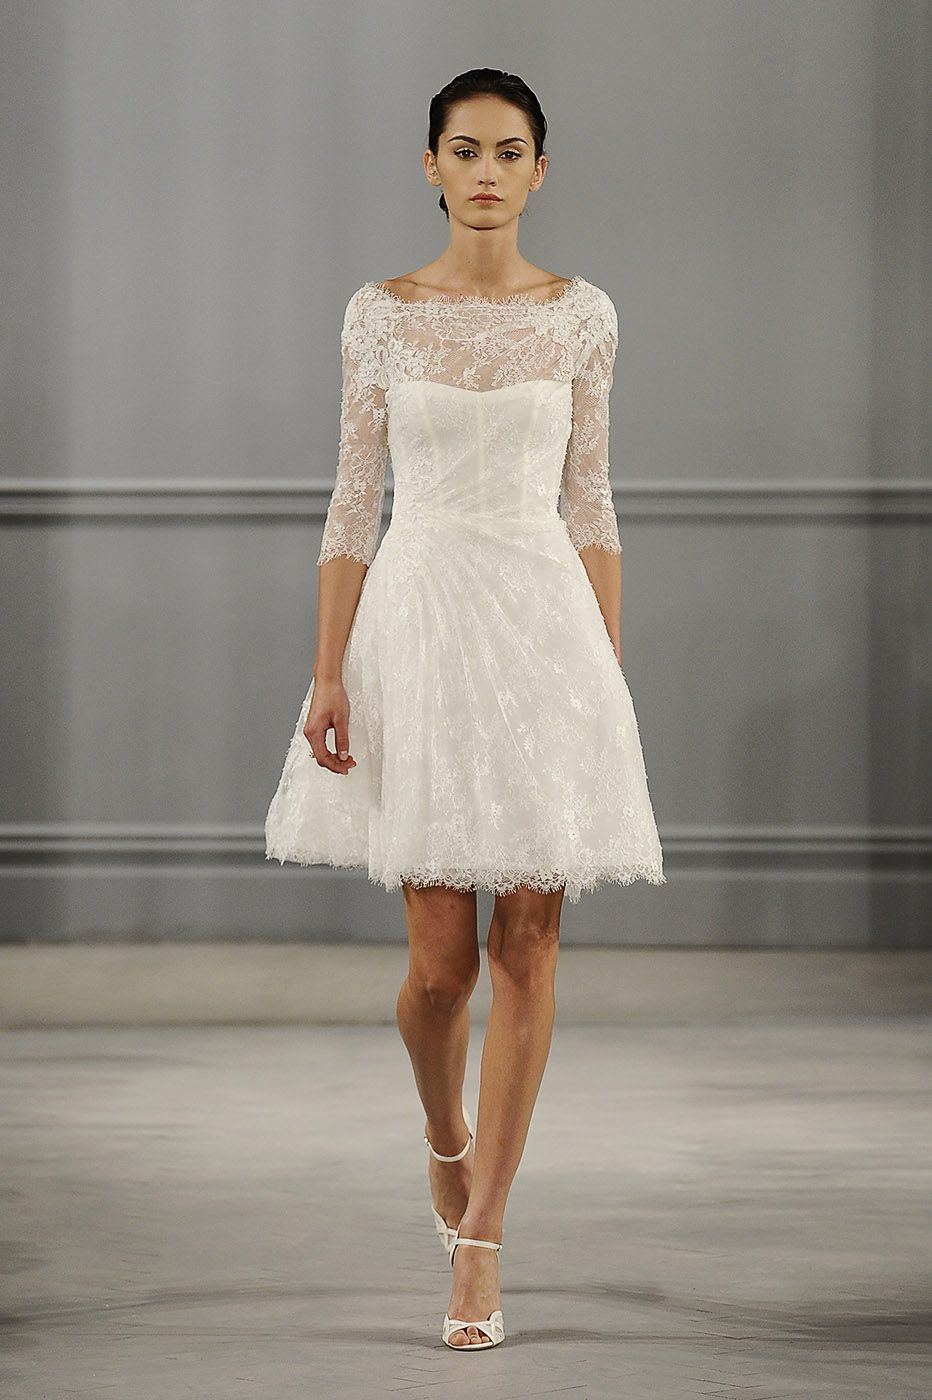 Long wedding reception dresses for the bride  The Weirdest Trends From the Spring Bridal Shows  Monique lhuillier